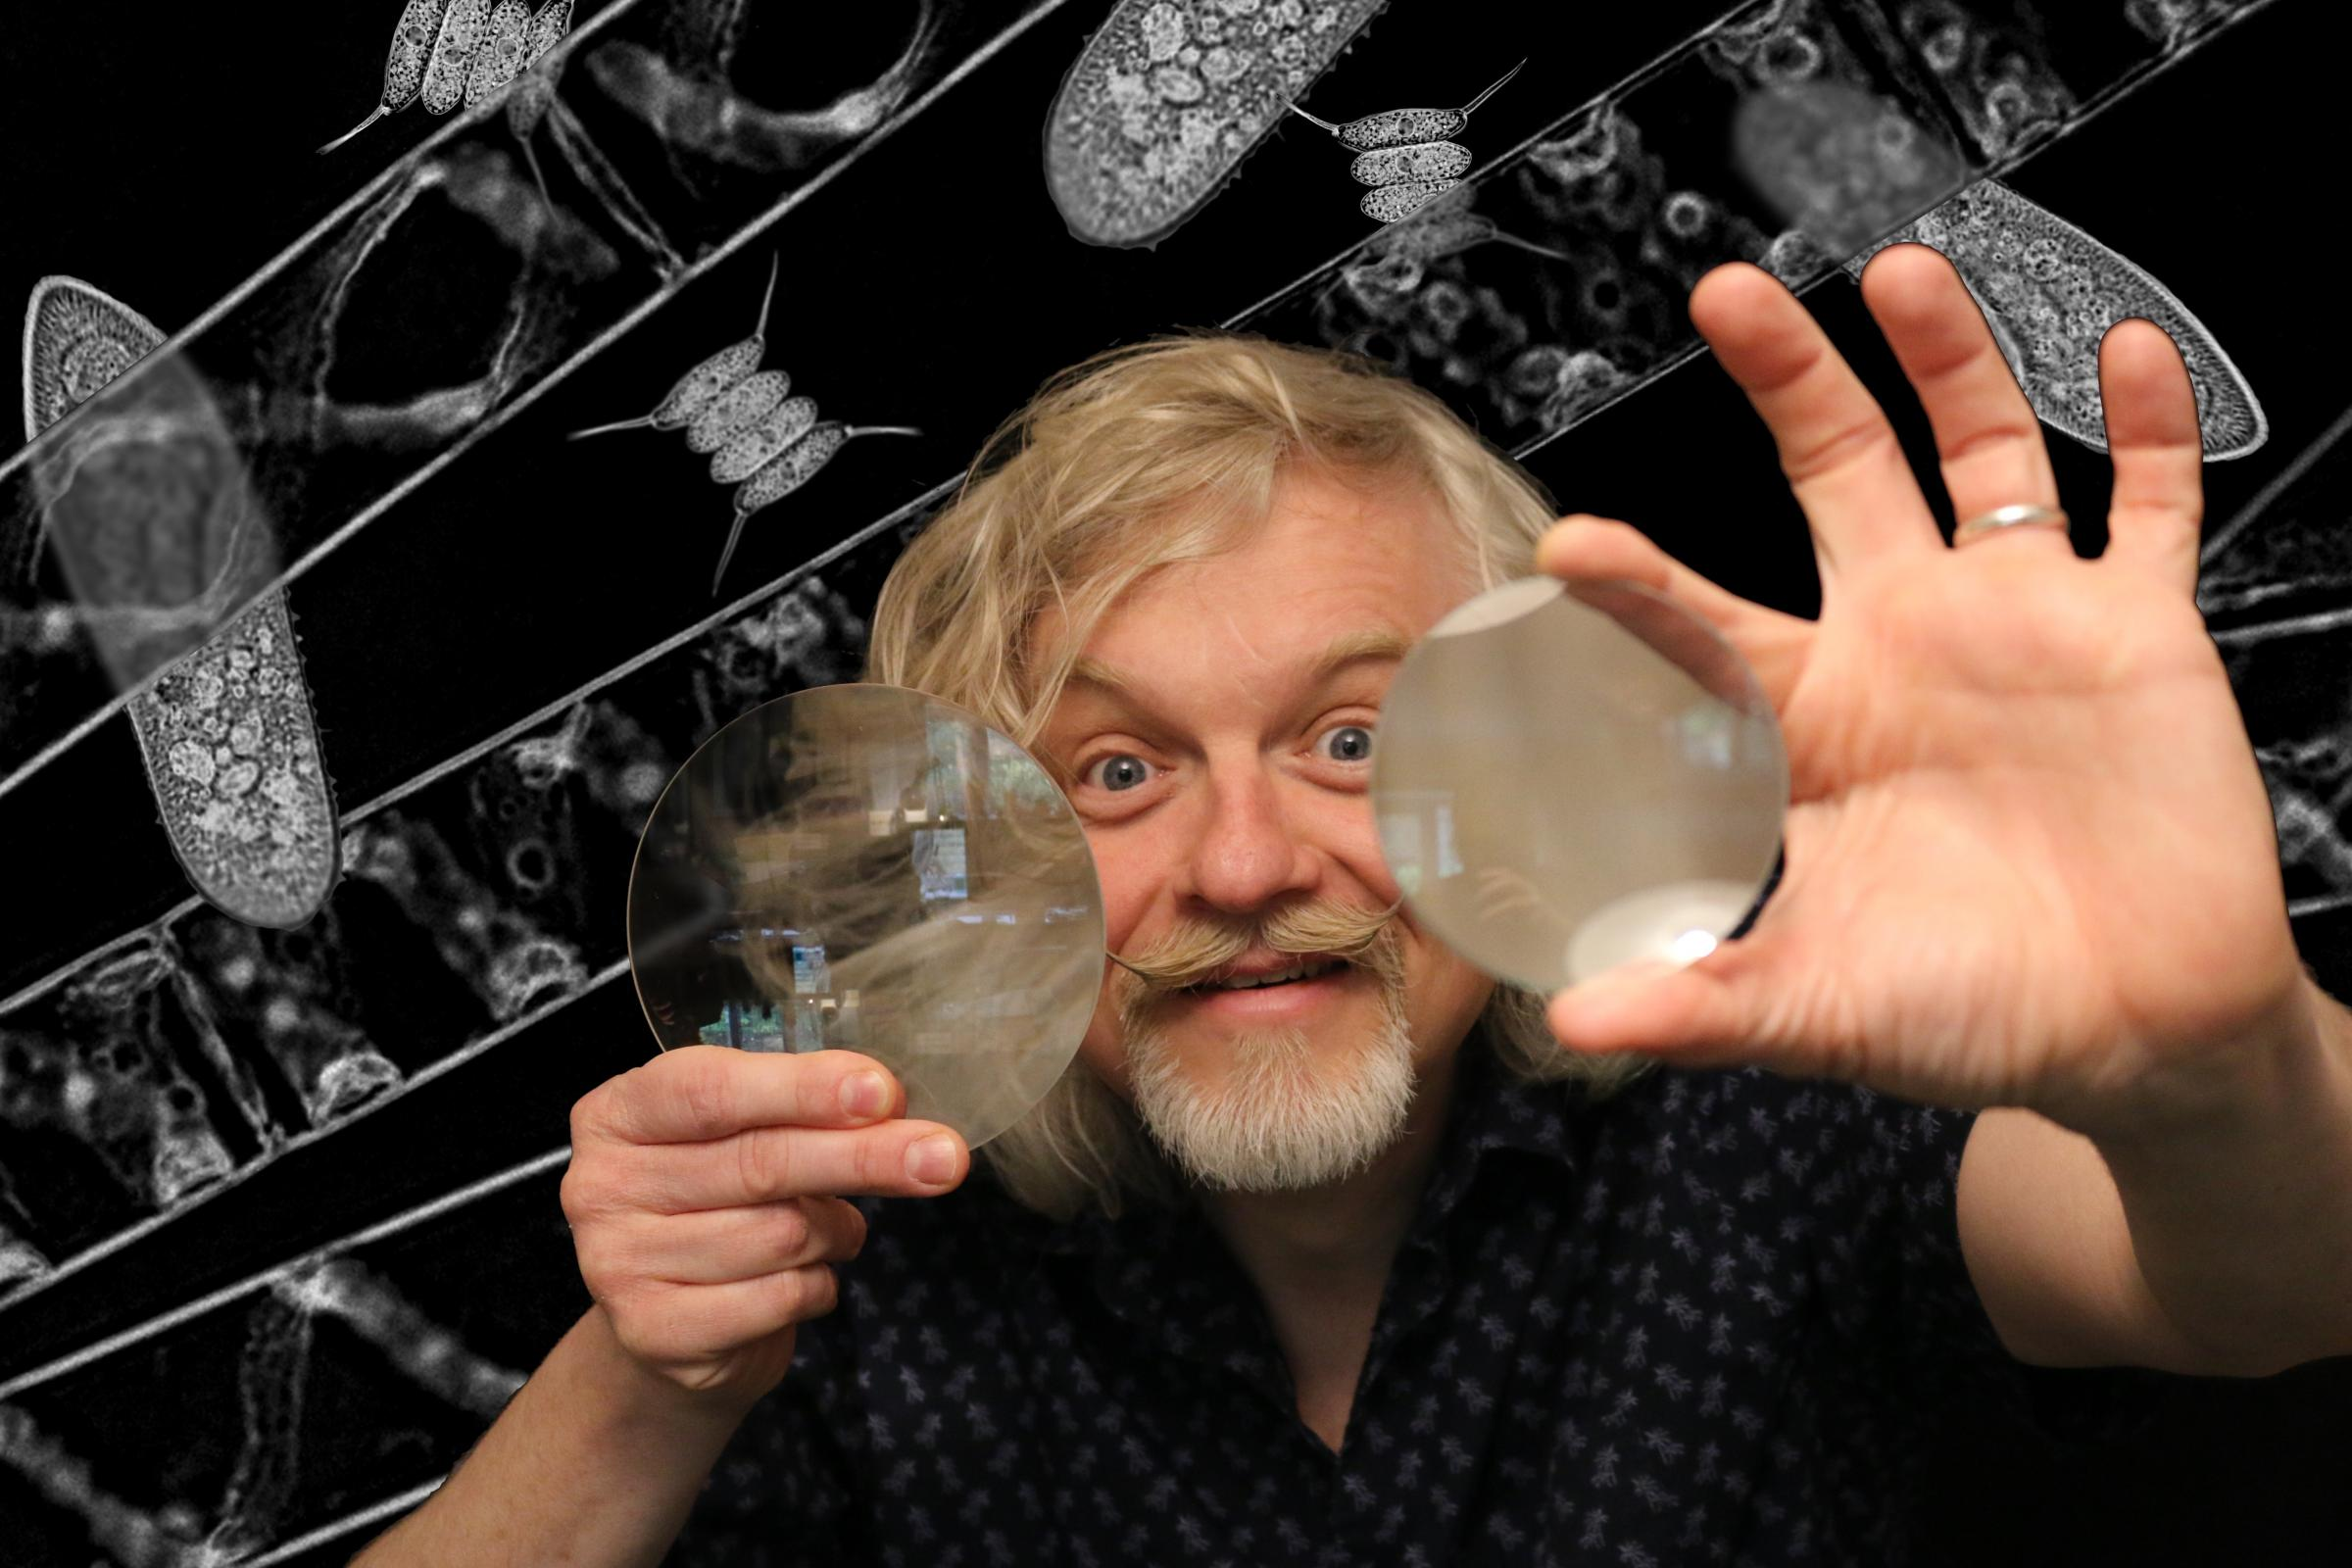 Dr Marty Jopson took the audience on a 'microscopic safari' at the 2018 Otley Science Festival